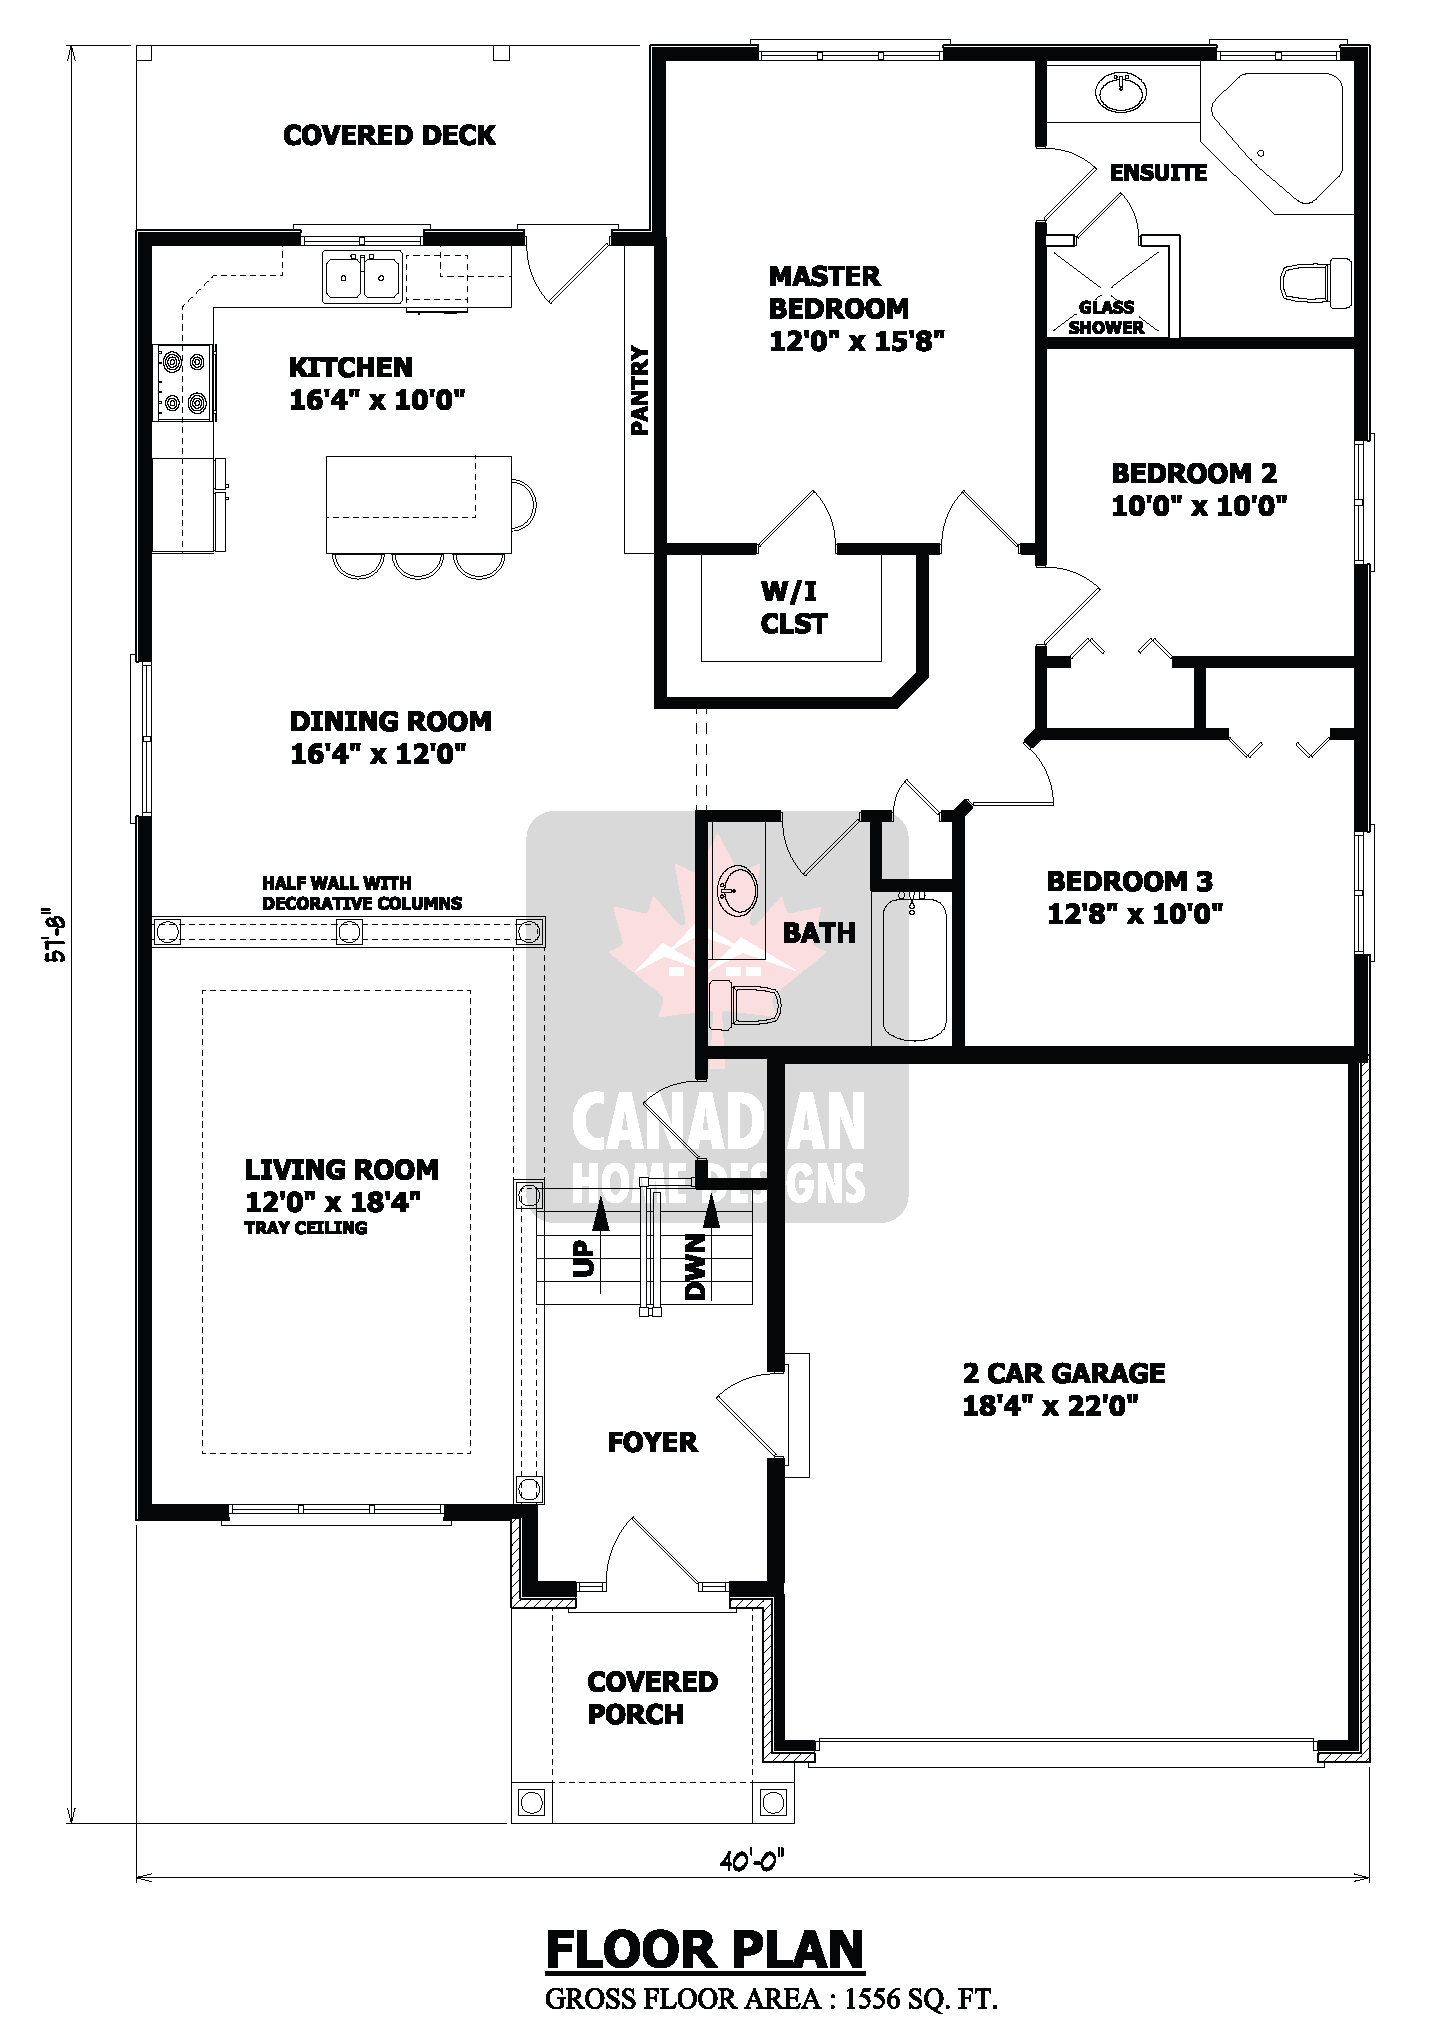 Marvelous Tiny House Floor Plans At Dwg Pinterest Small Homes Inspirational Interior Design Netriciaus